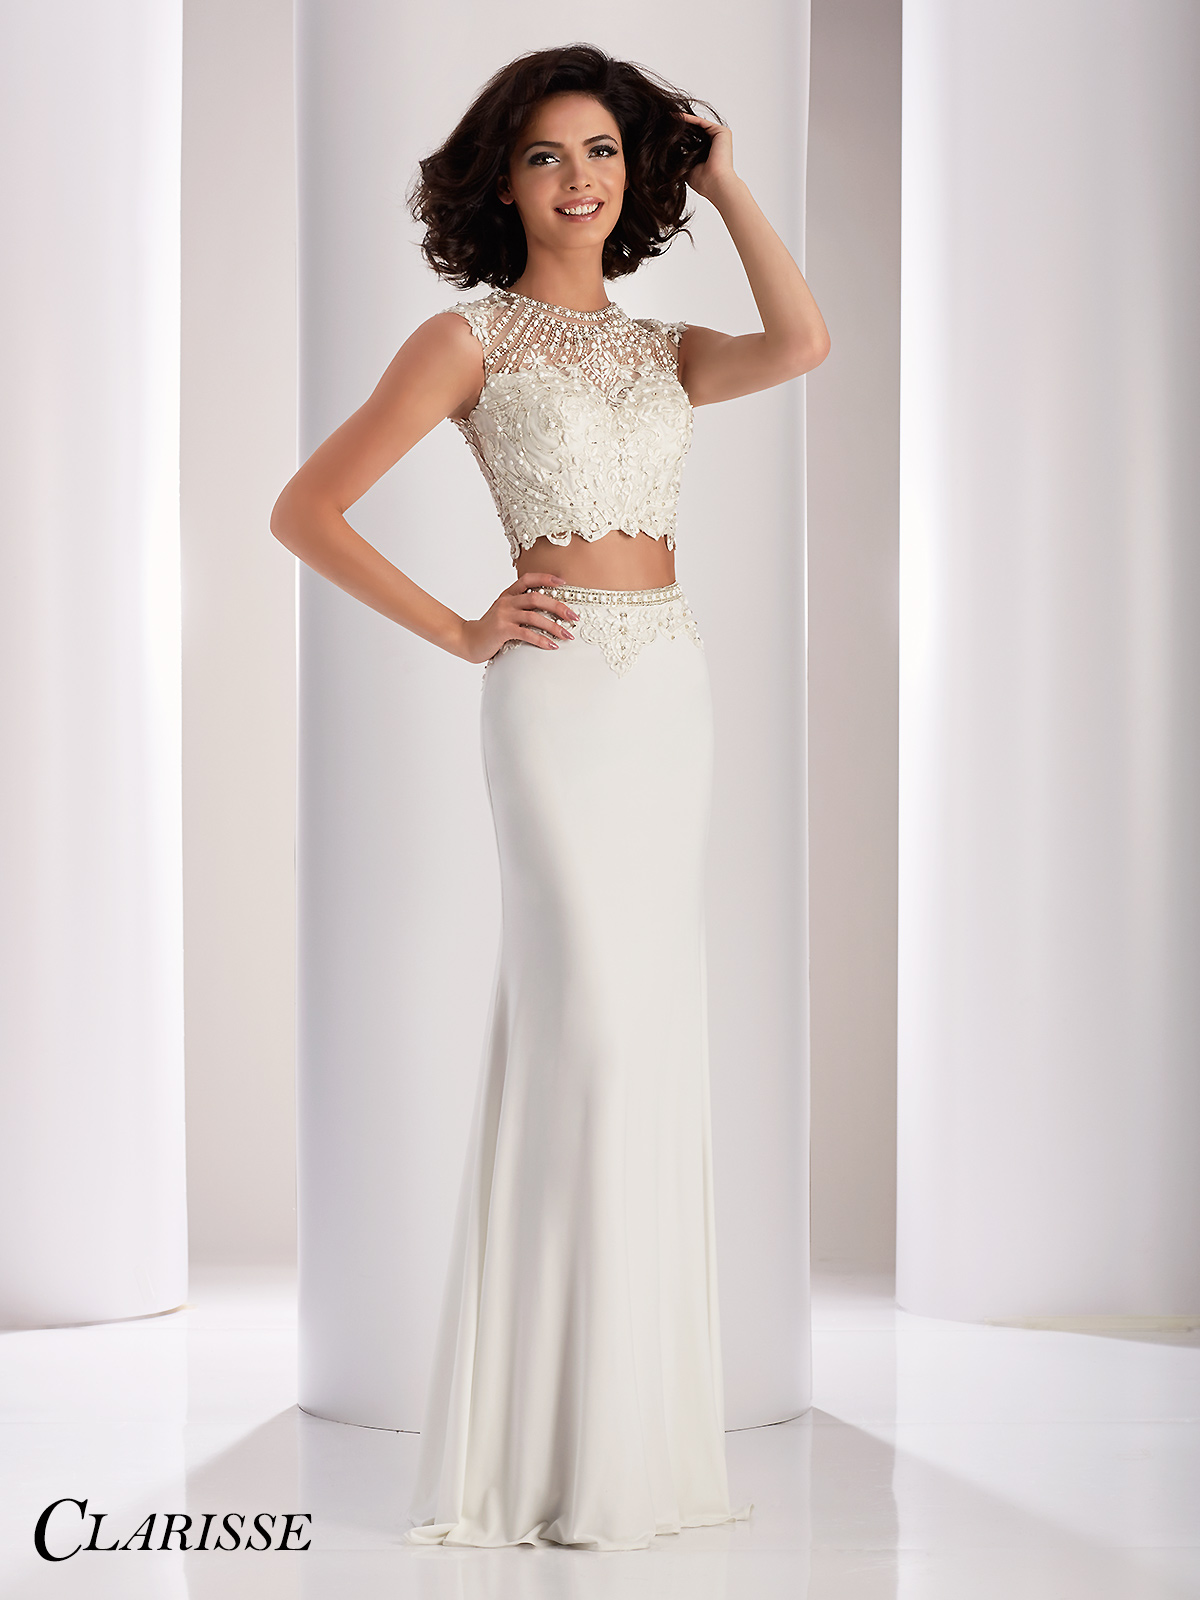 8a63a8d4fed Clarisse Prom Dress 4845